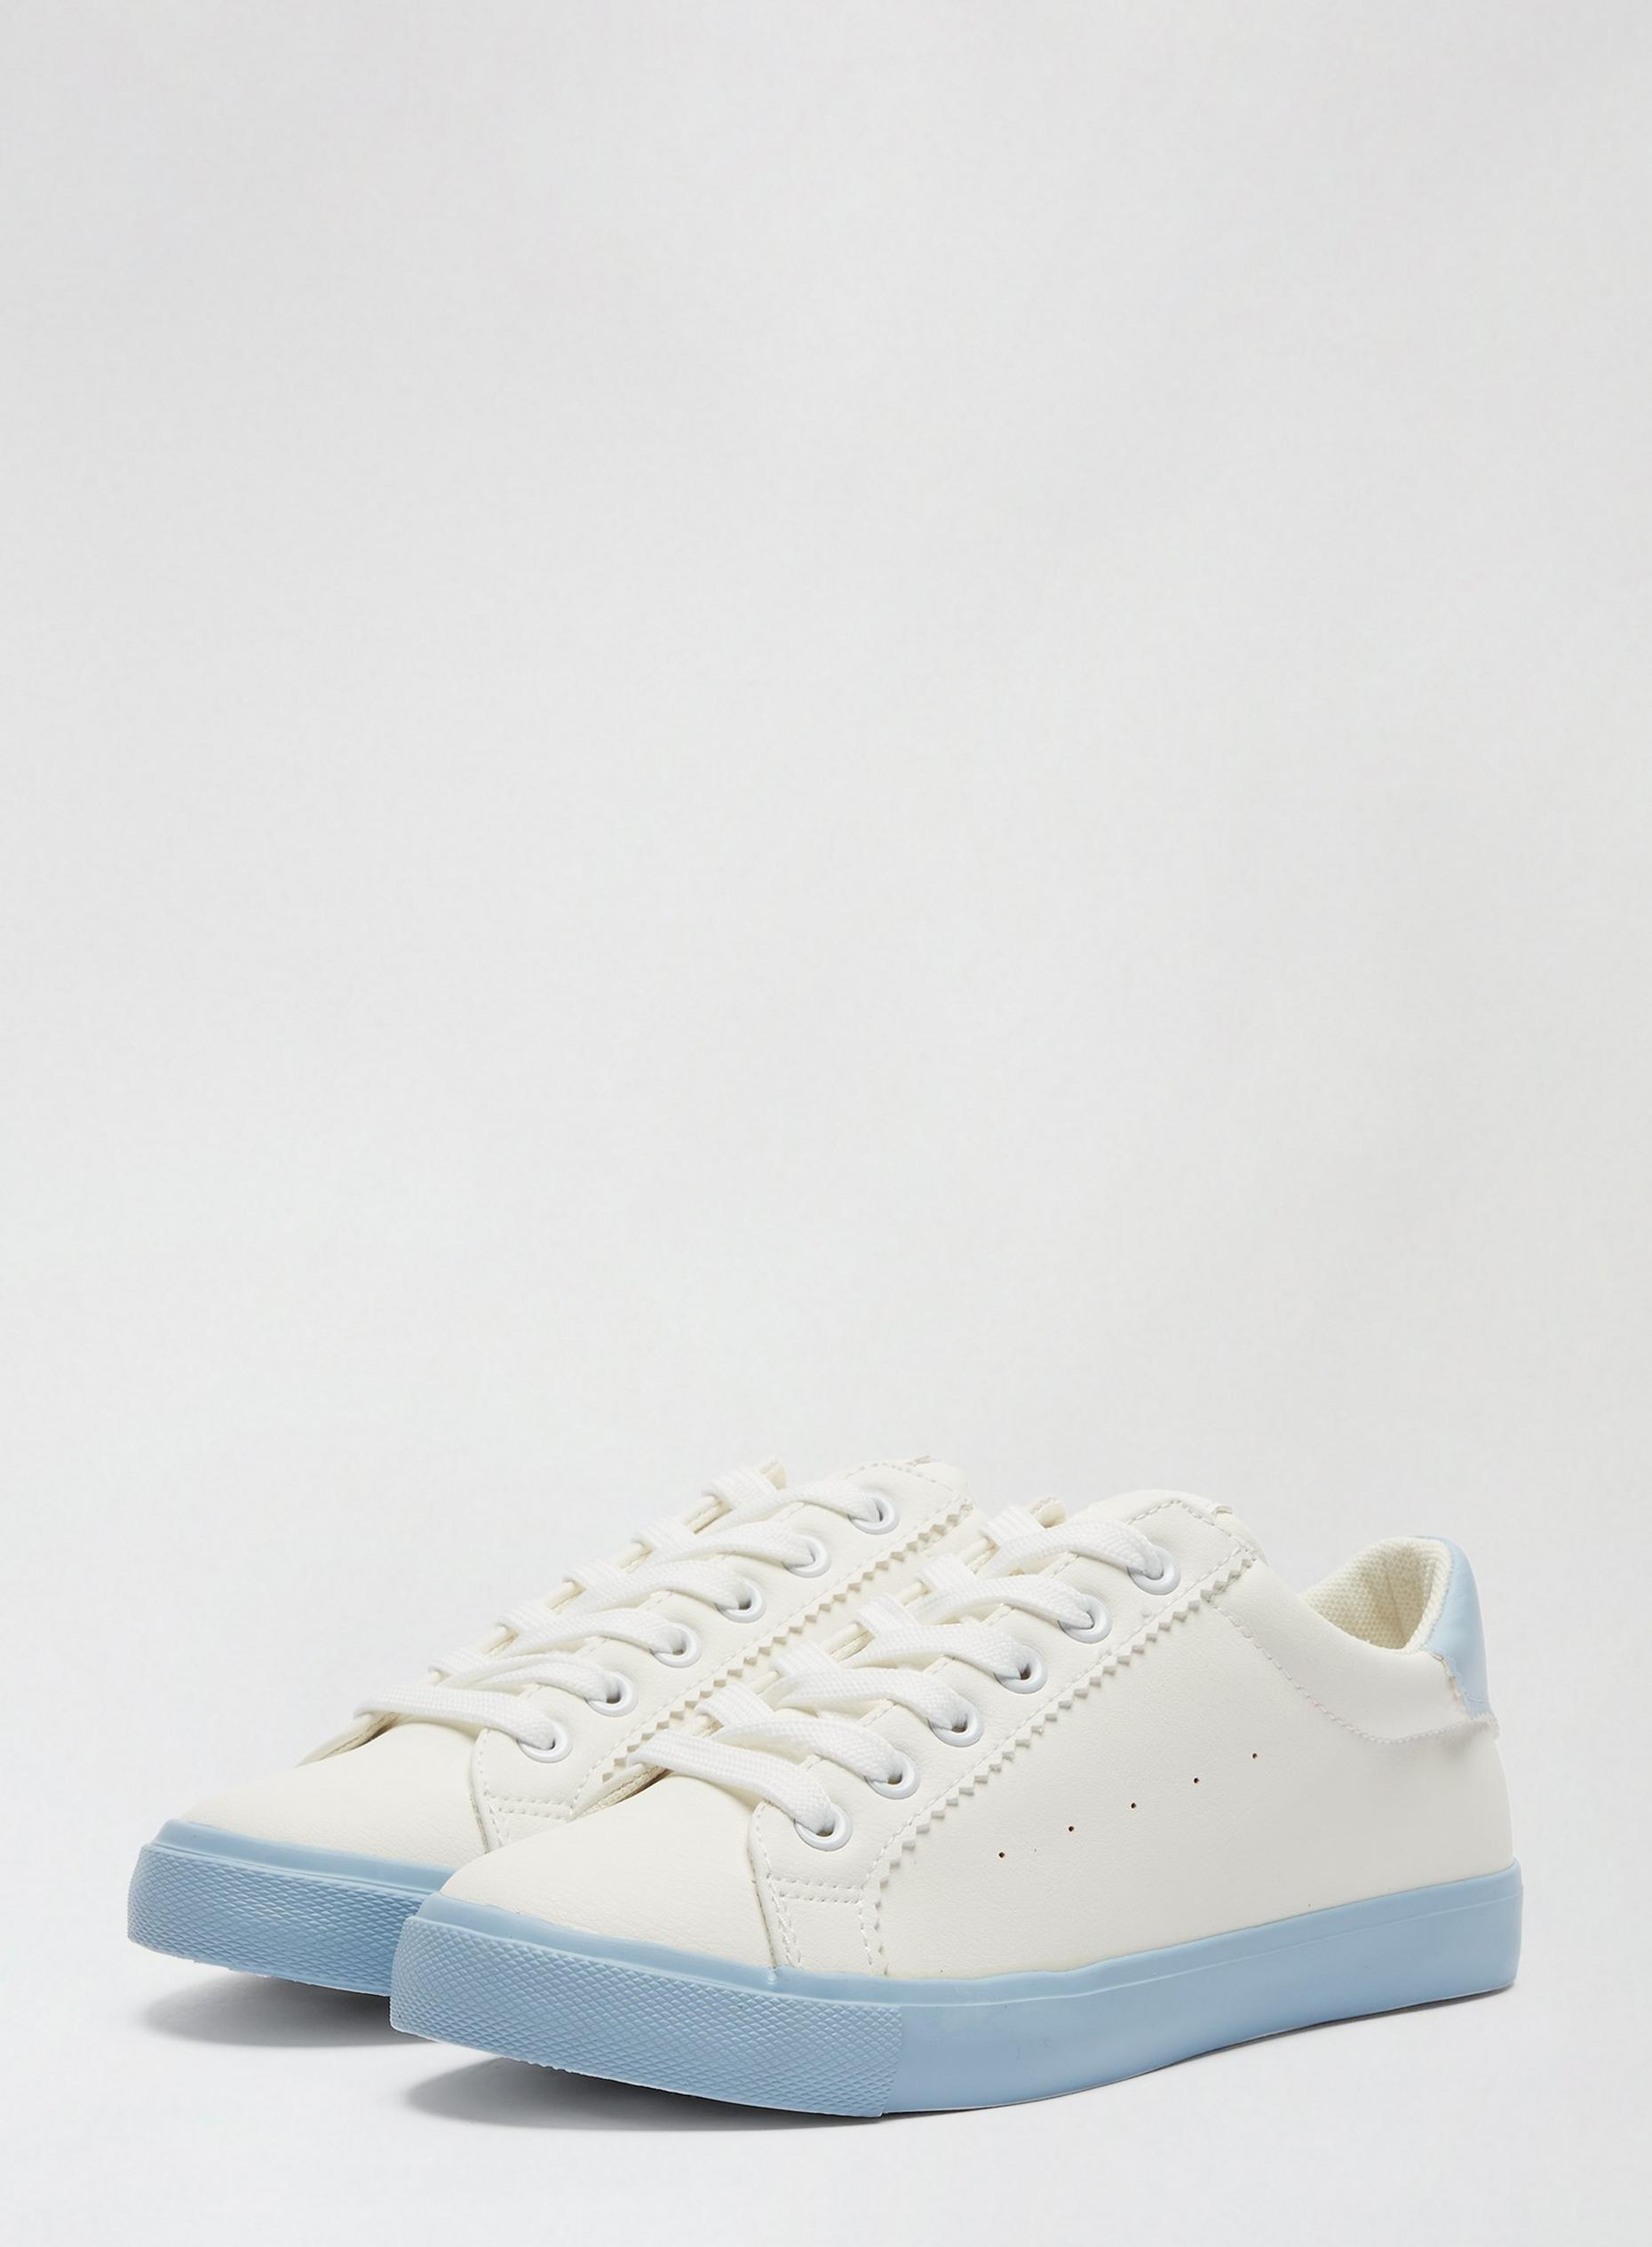 White and Blue Inara Trainers